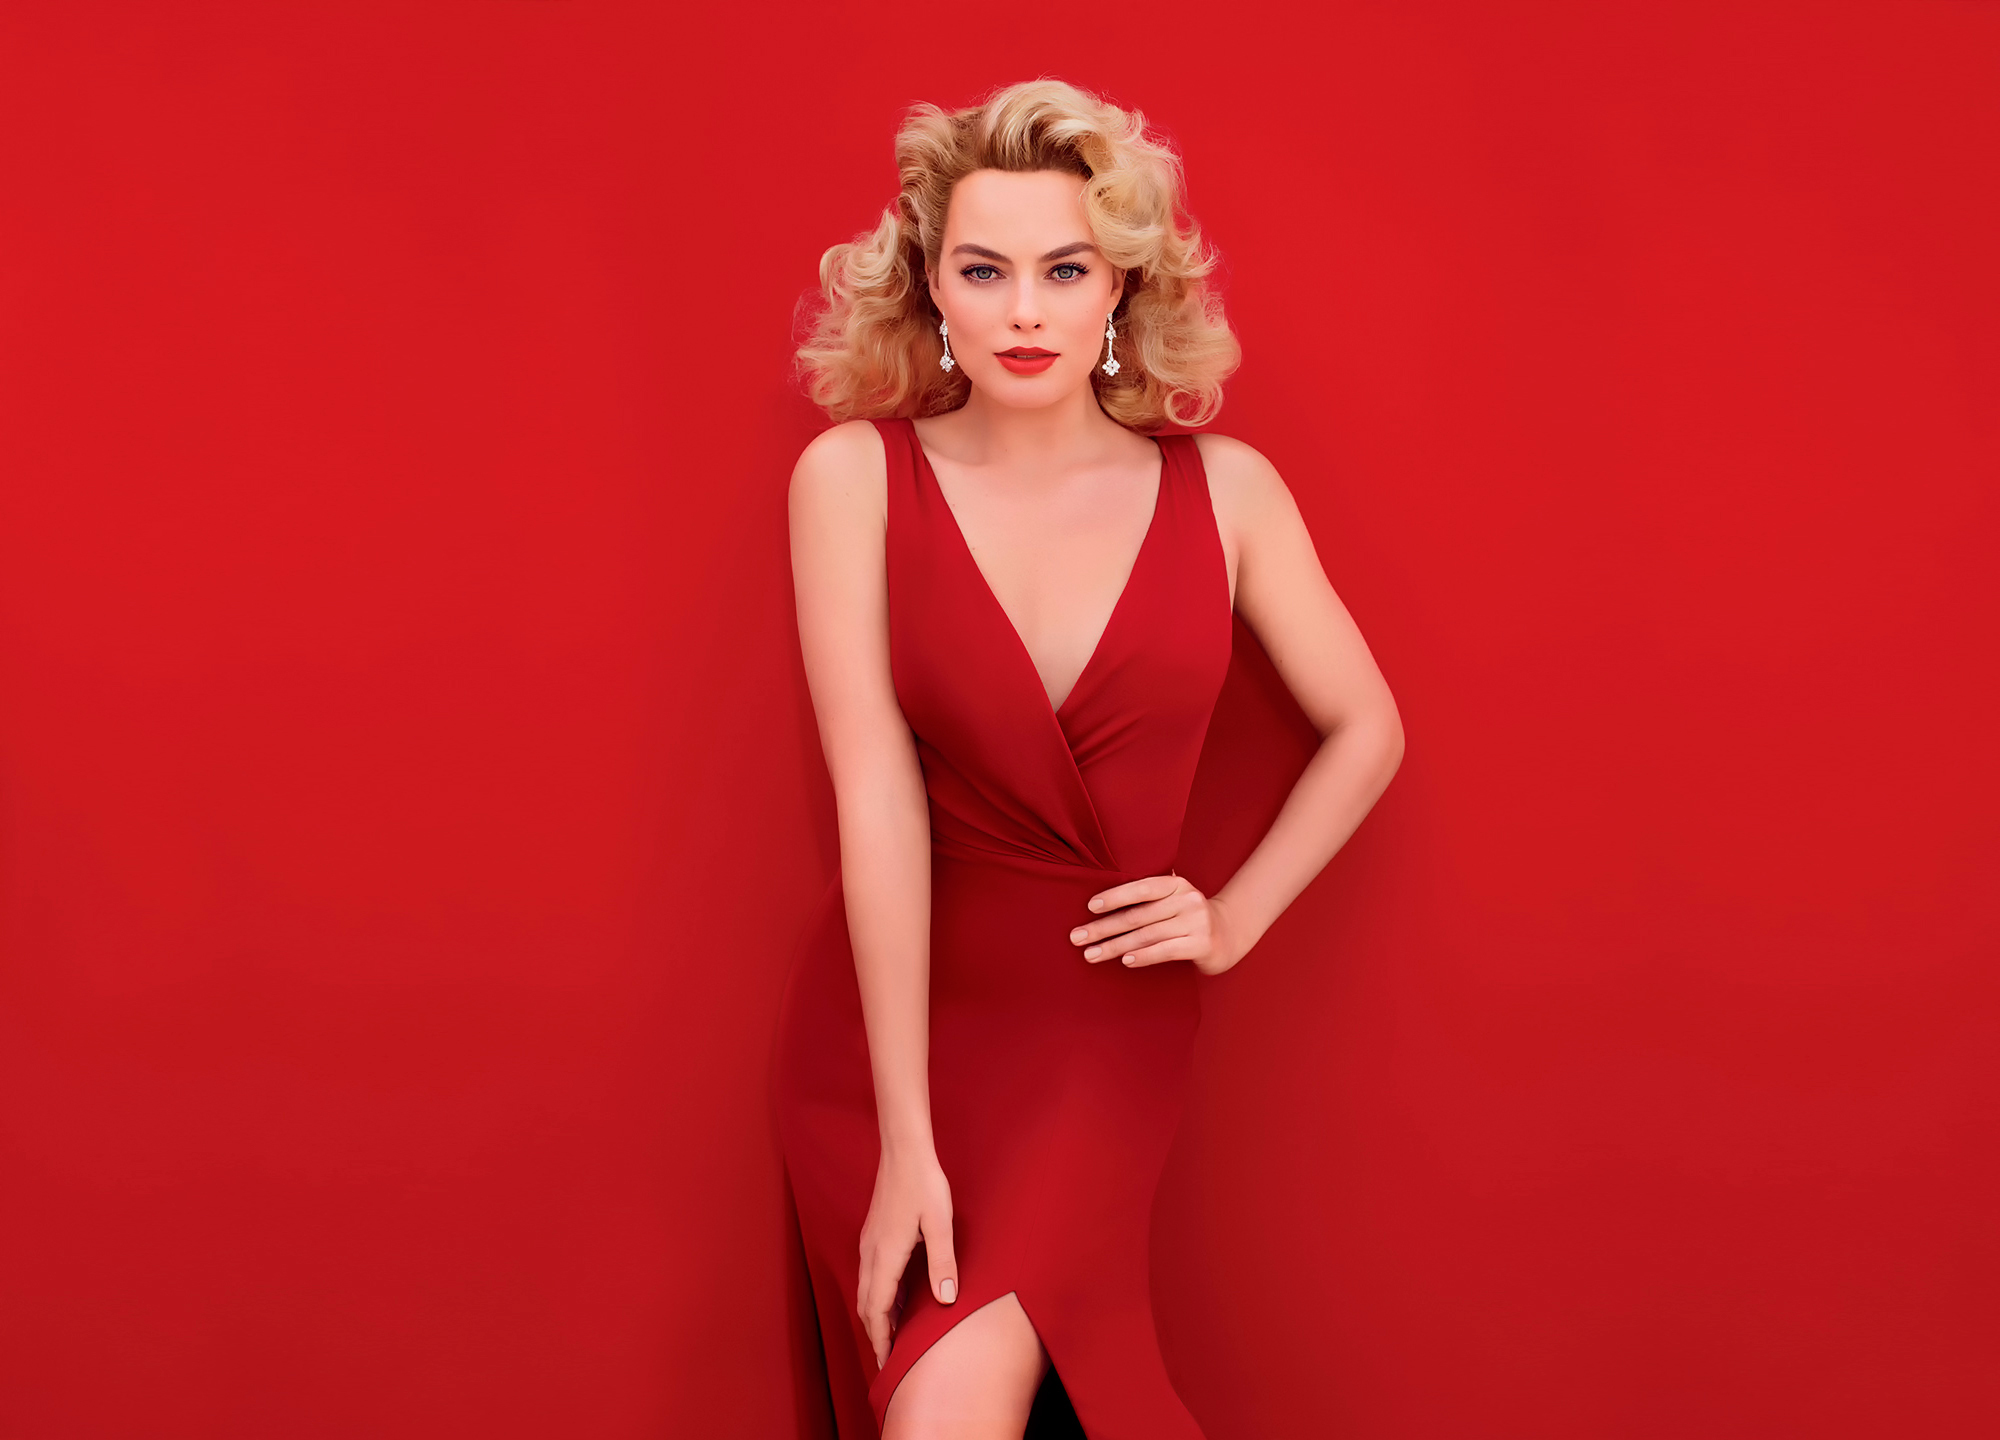 Margot Robbie Hot Red